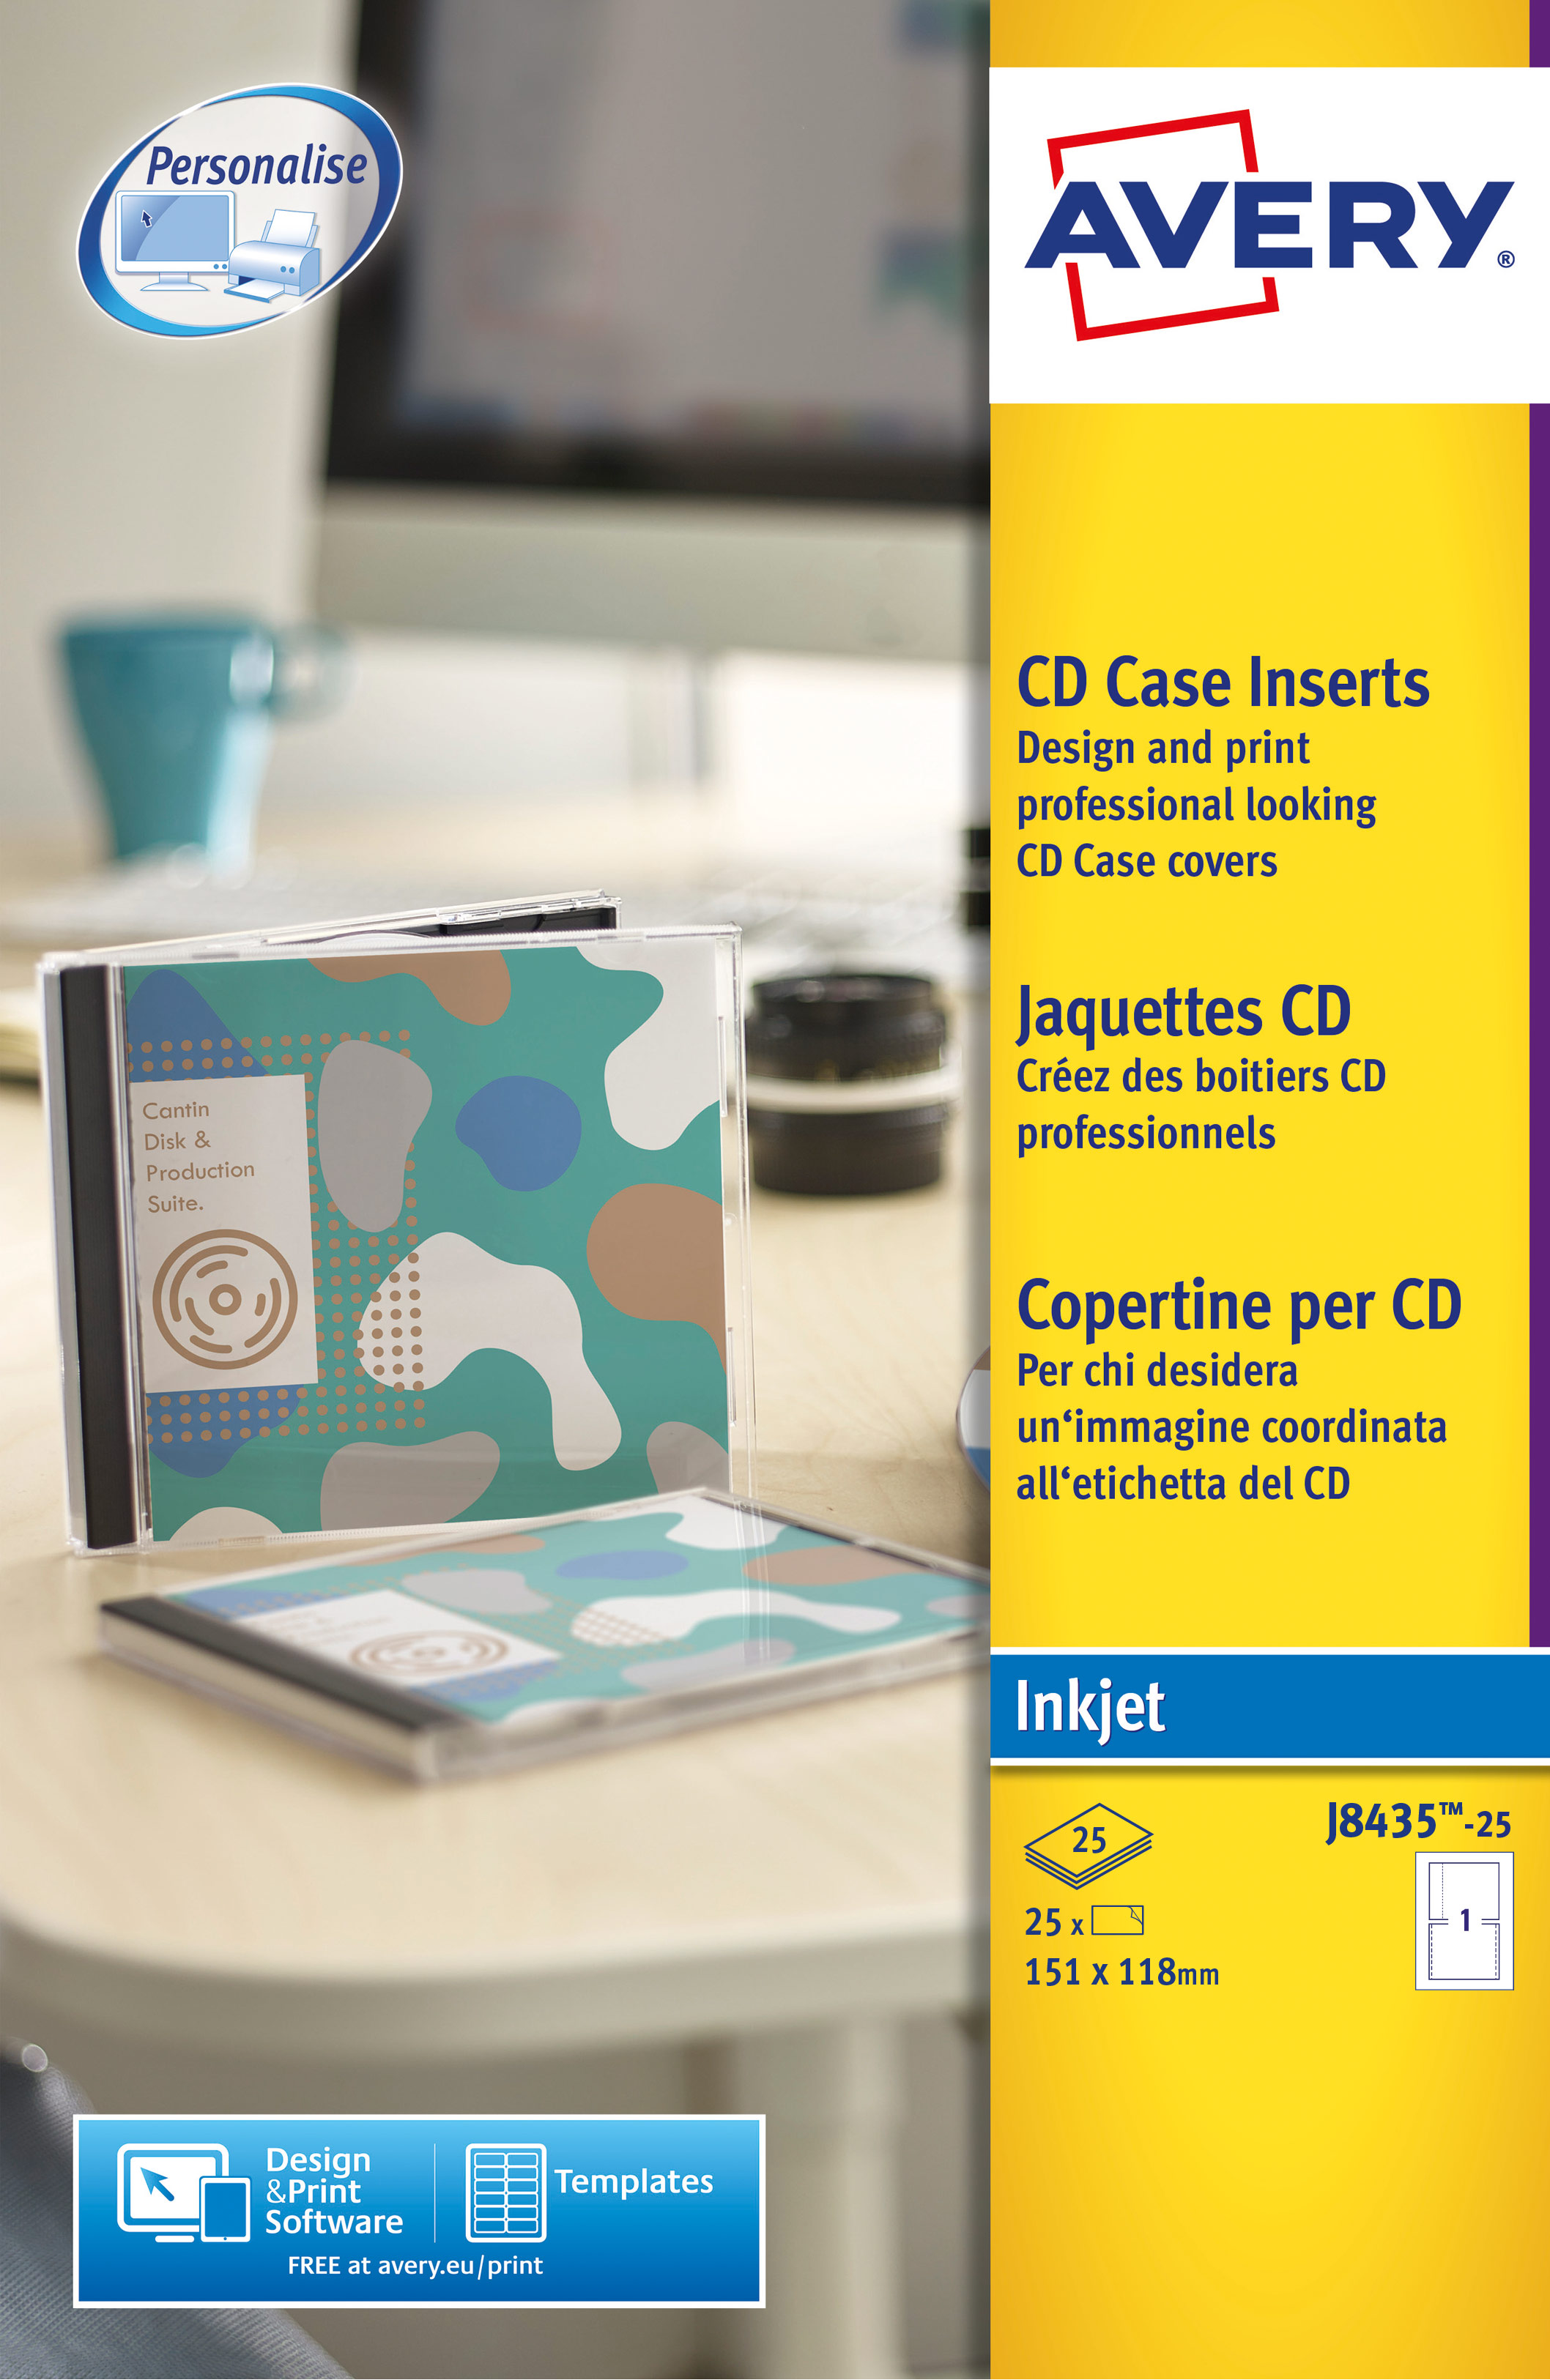 Filing / Media / Retail Avery CD Case Insert Inkjet J8435-25 (25 Labels)